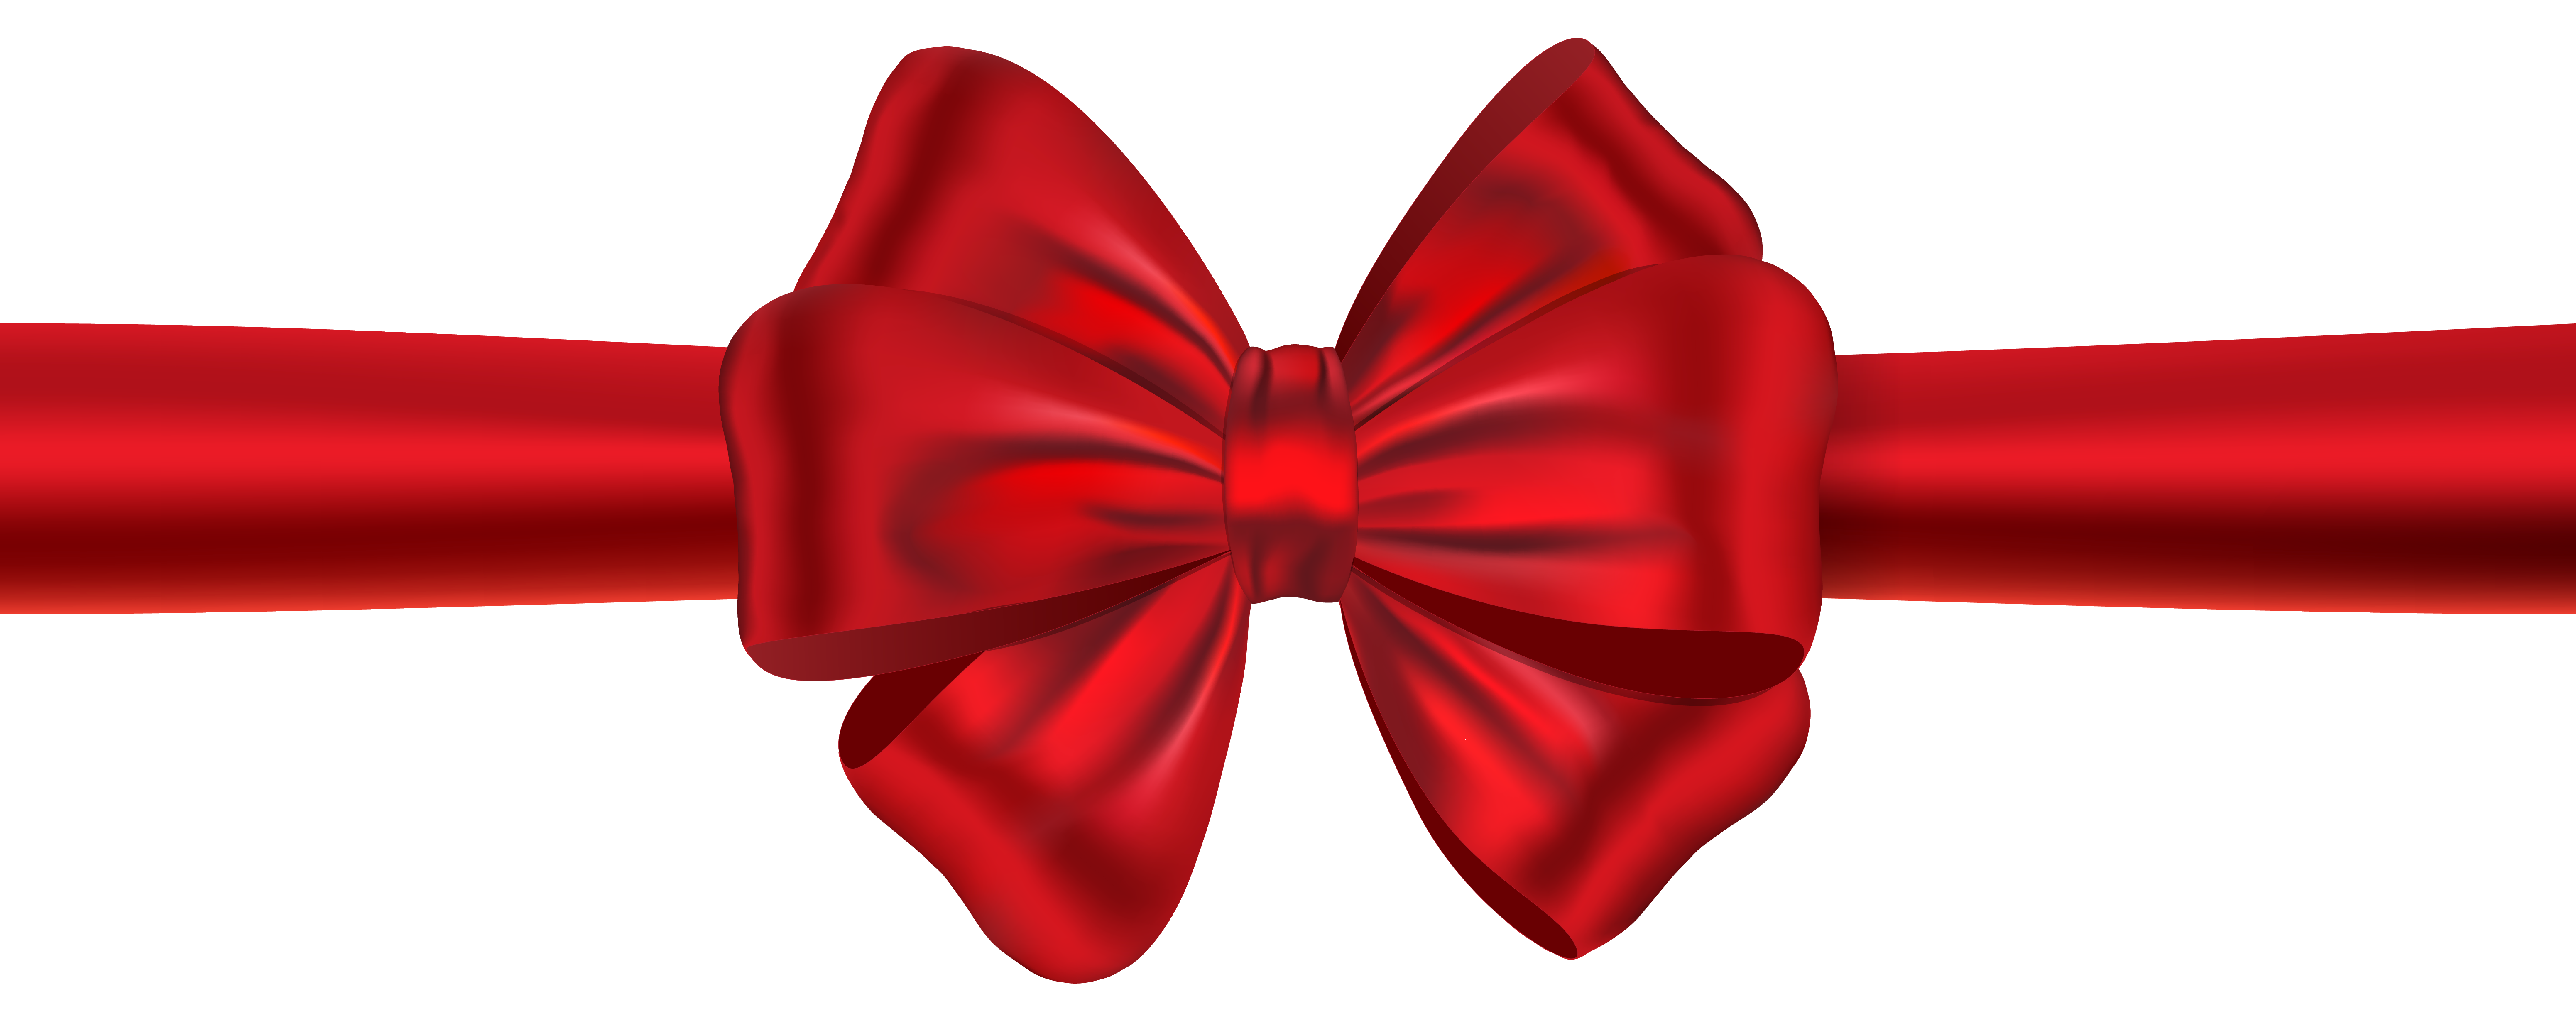 6204x2447 Red Ribbon With Bow Png Clipart Imageu200b Gallery Yopriceville